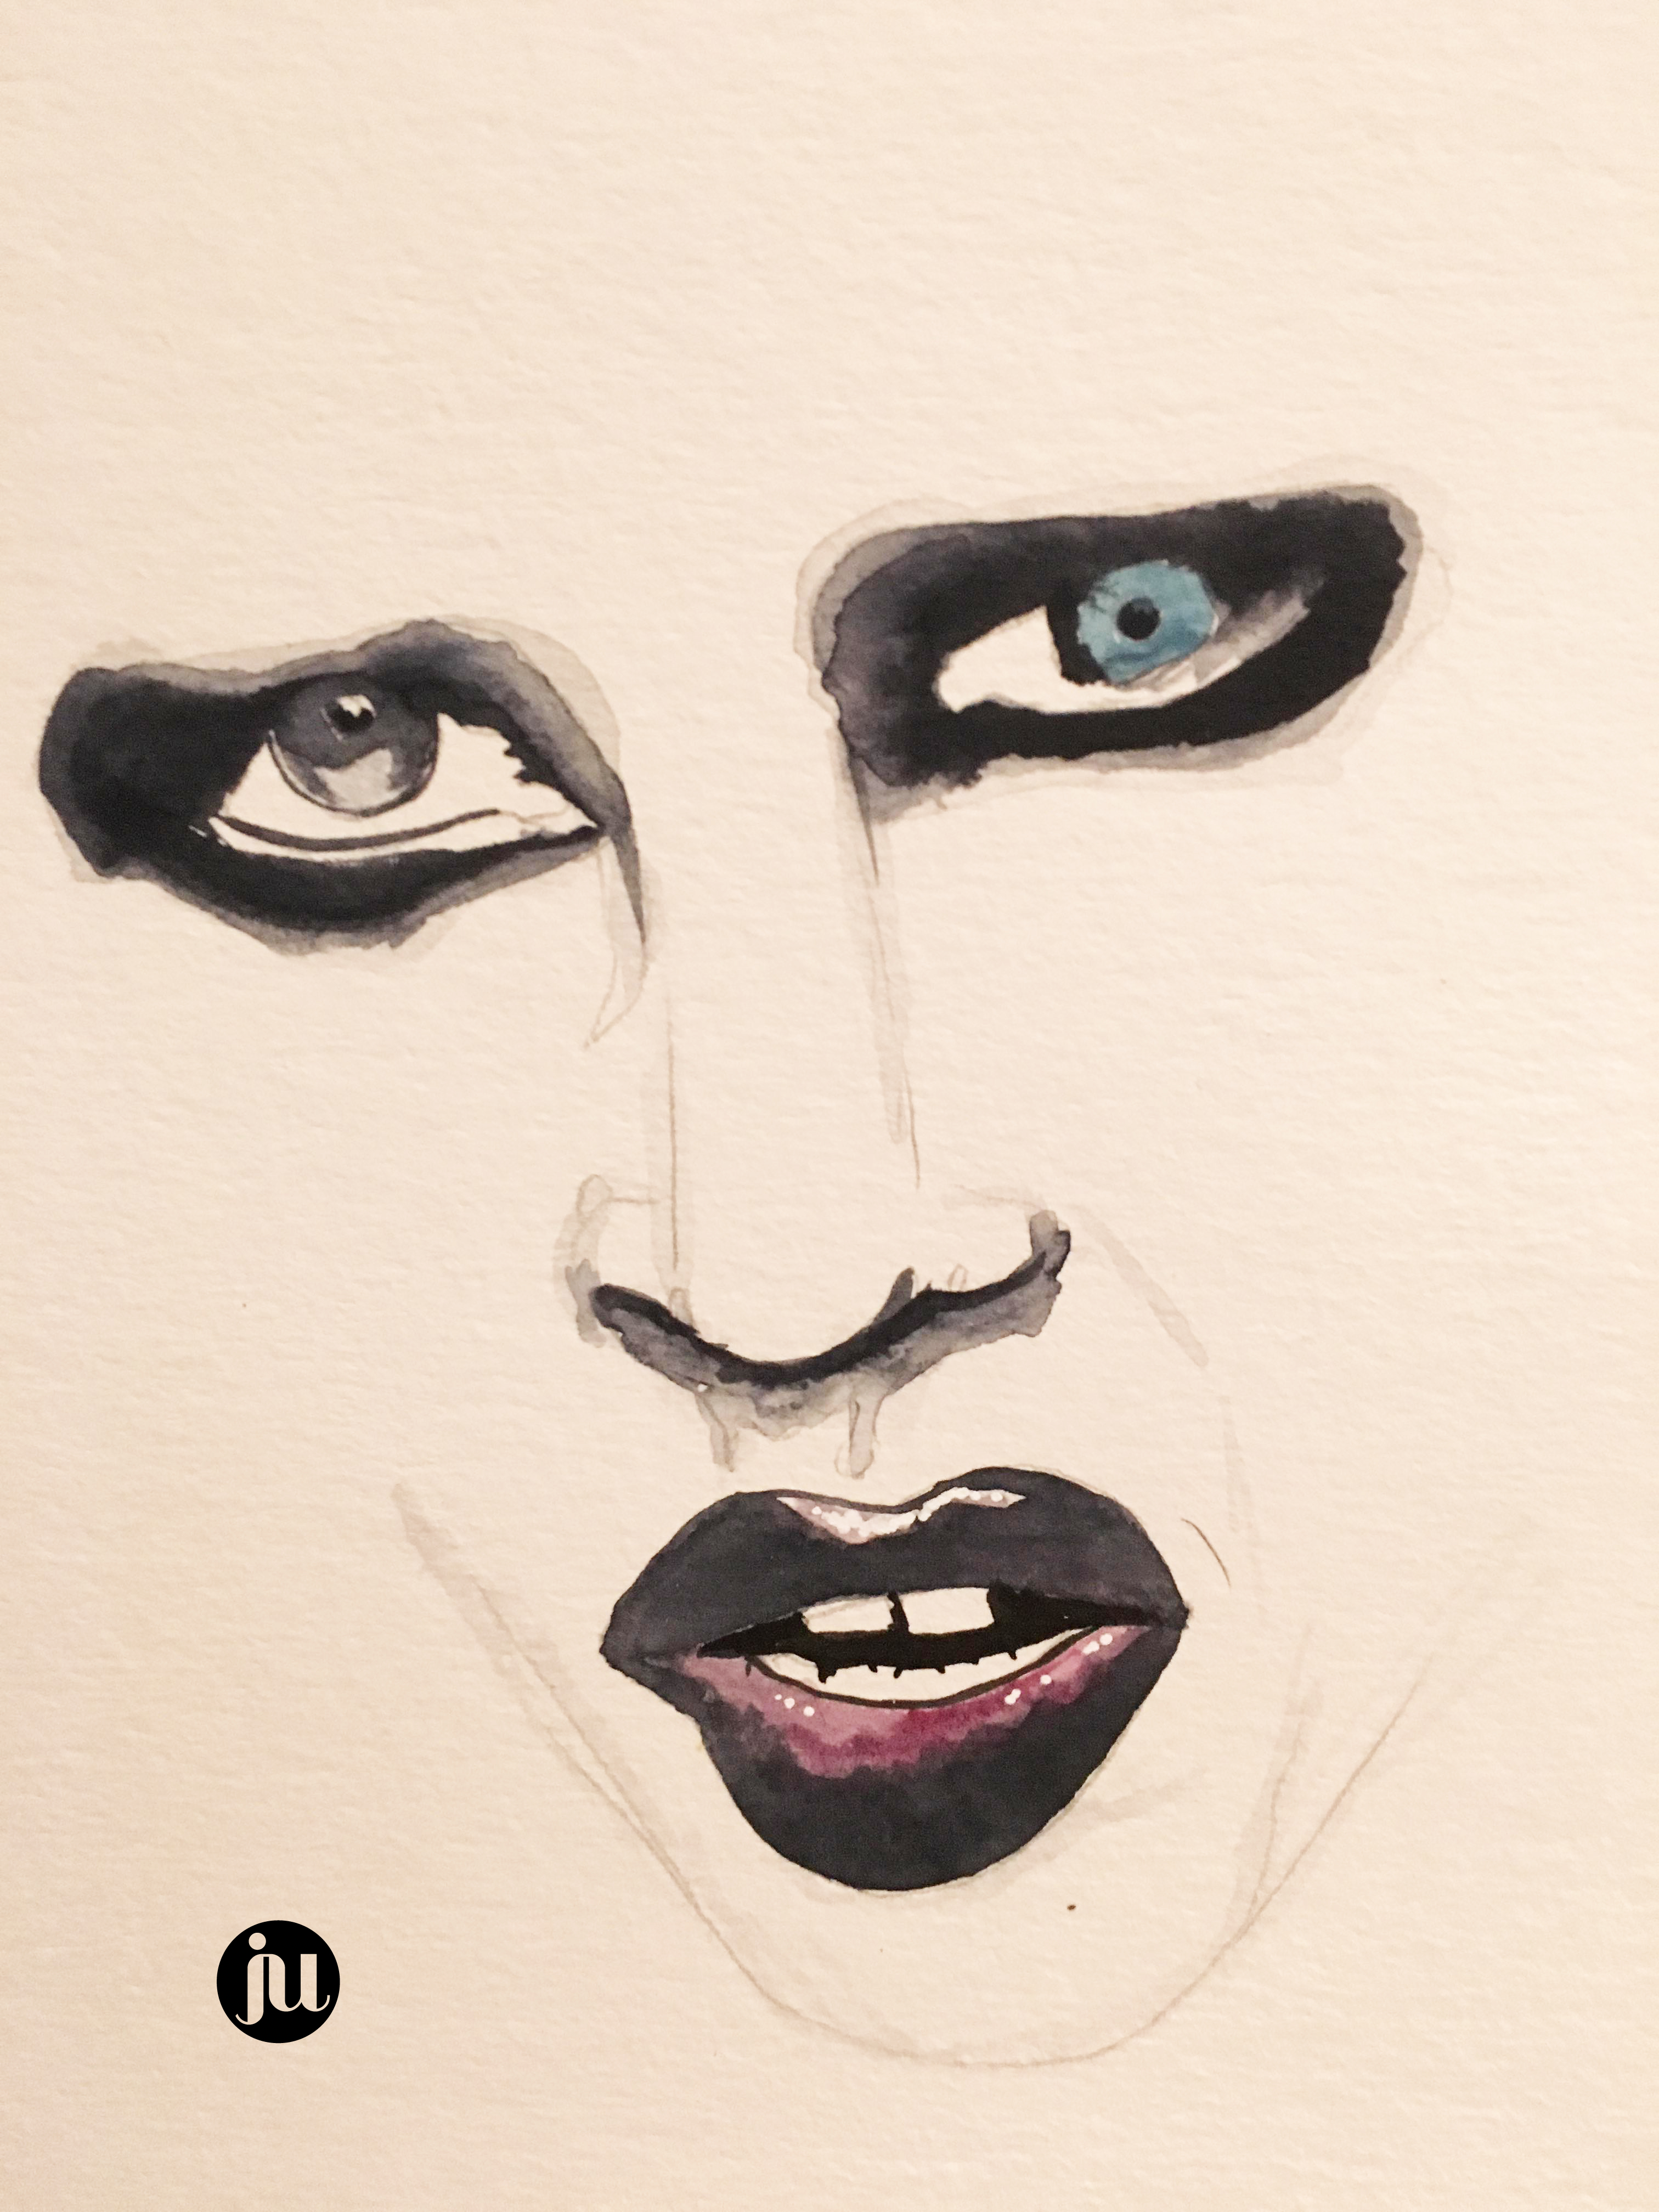 Tatouage Marylin Manson Aquarelle